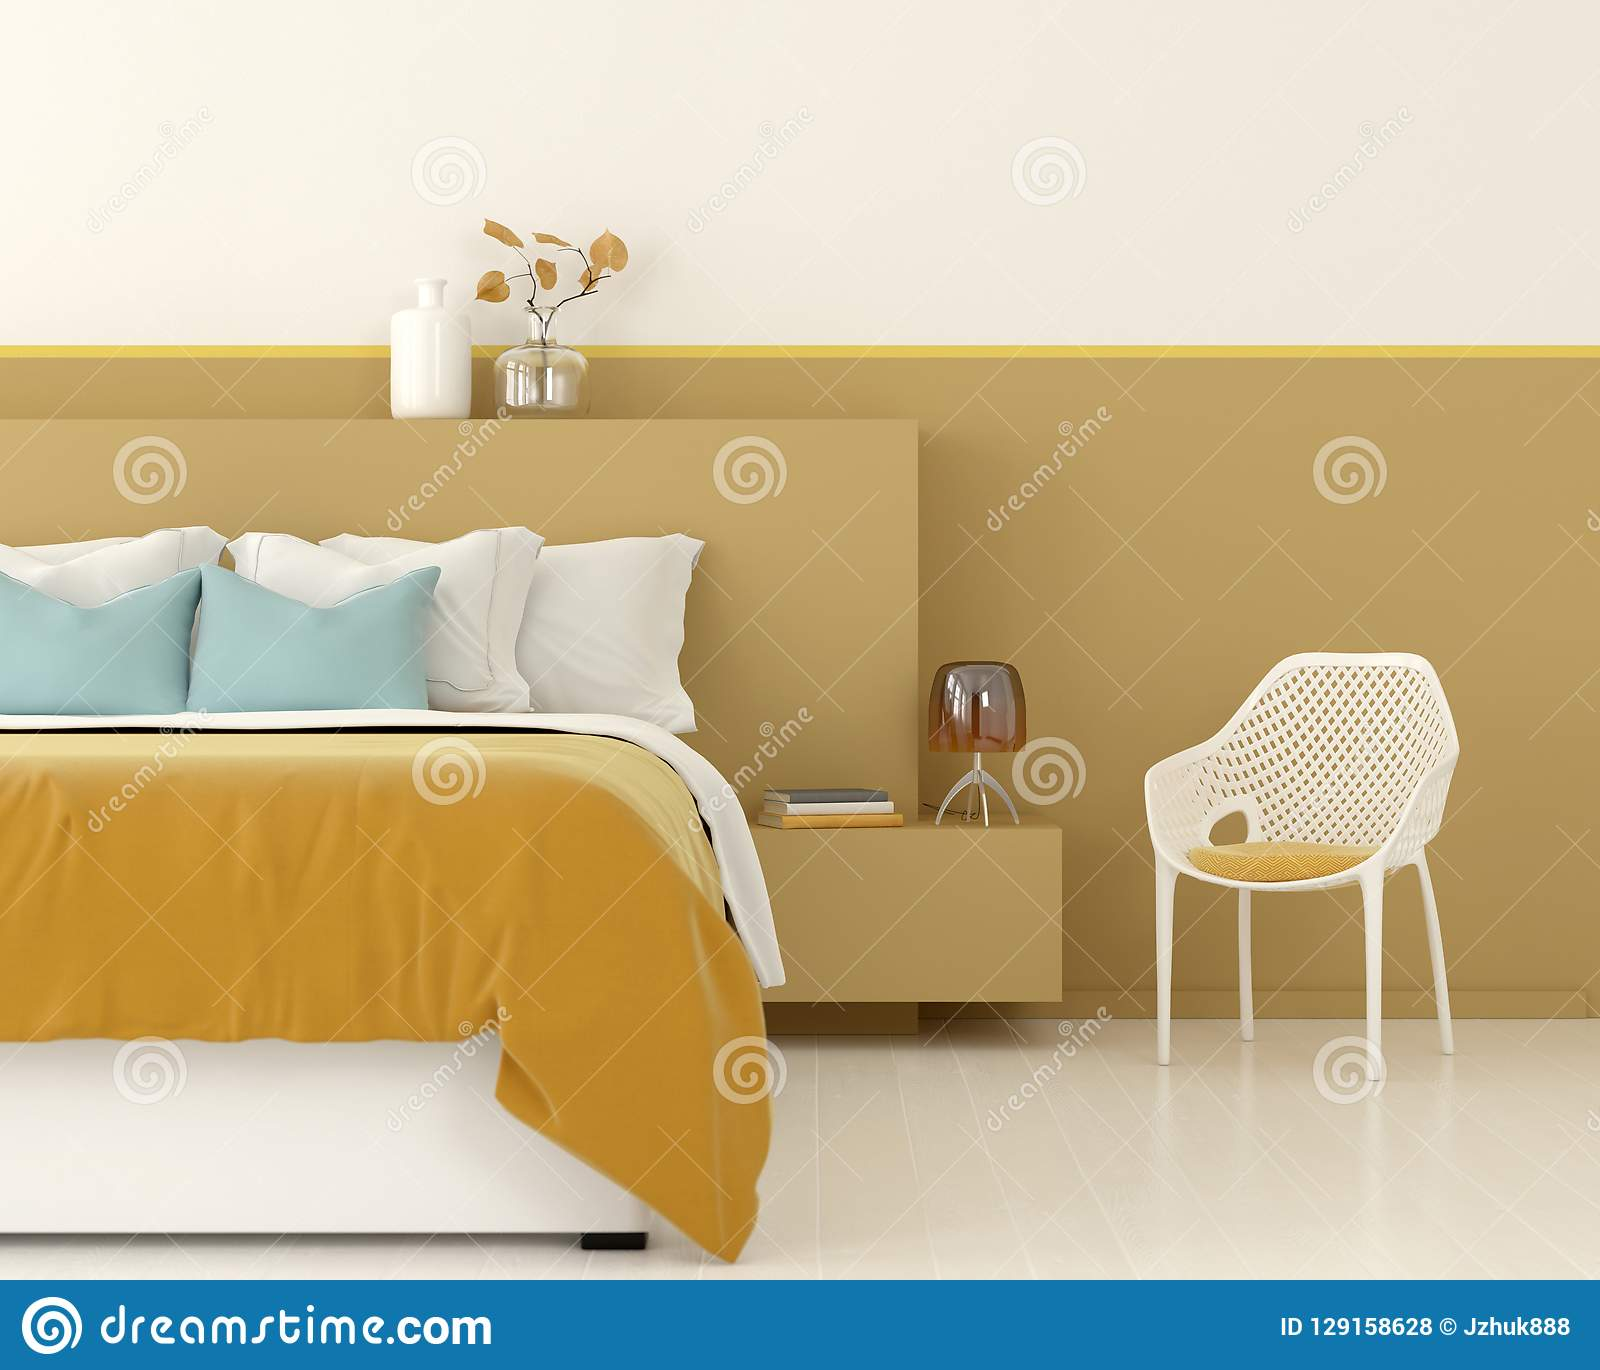 yellow bedroom chair metal folding chairs in bulk interior of a stock illustration with white